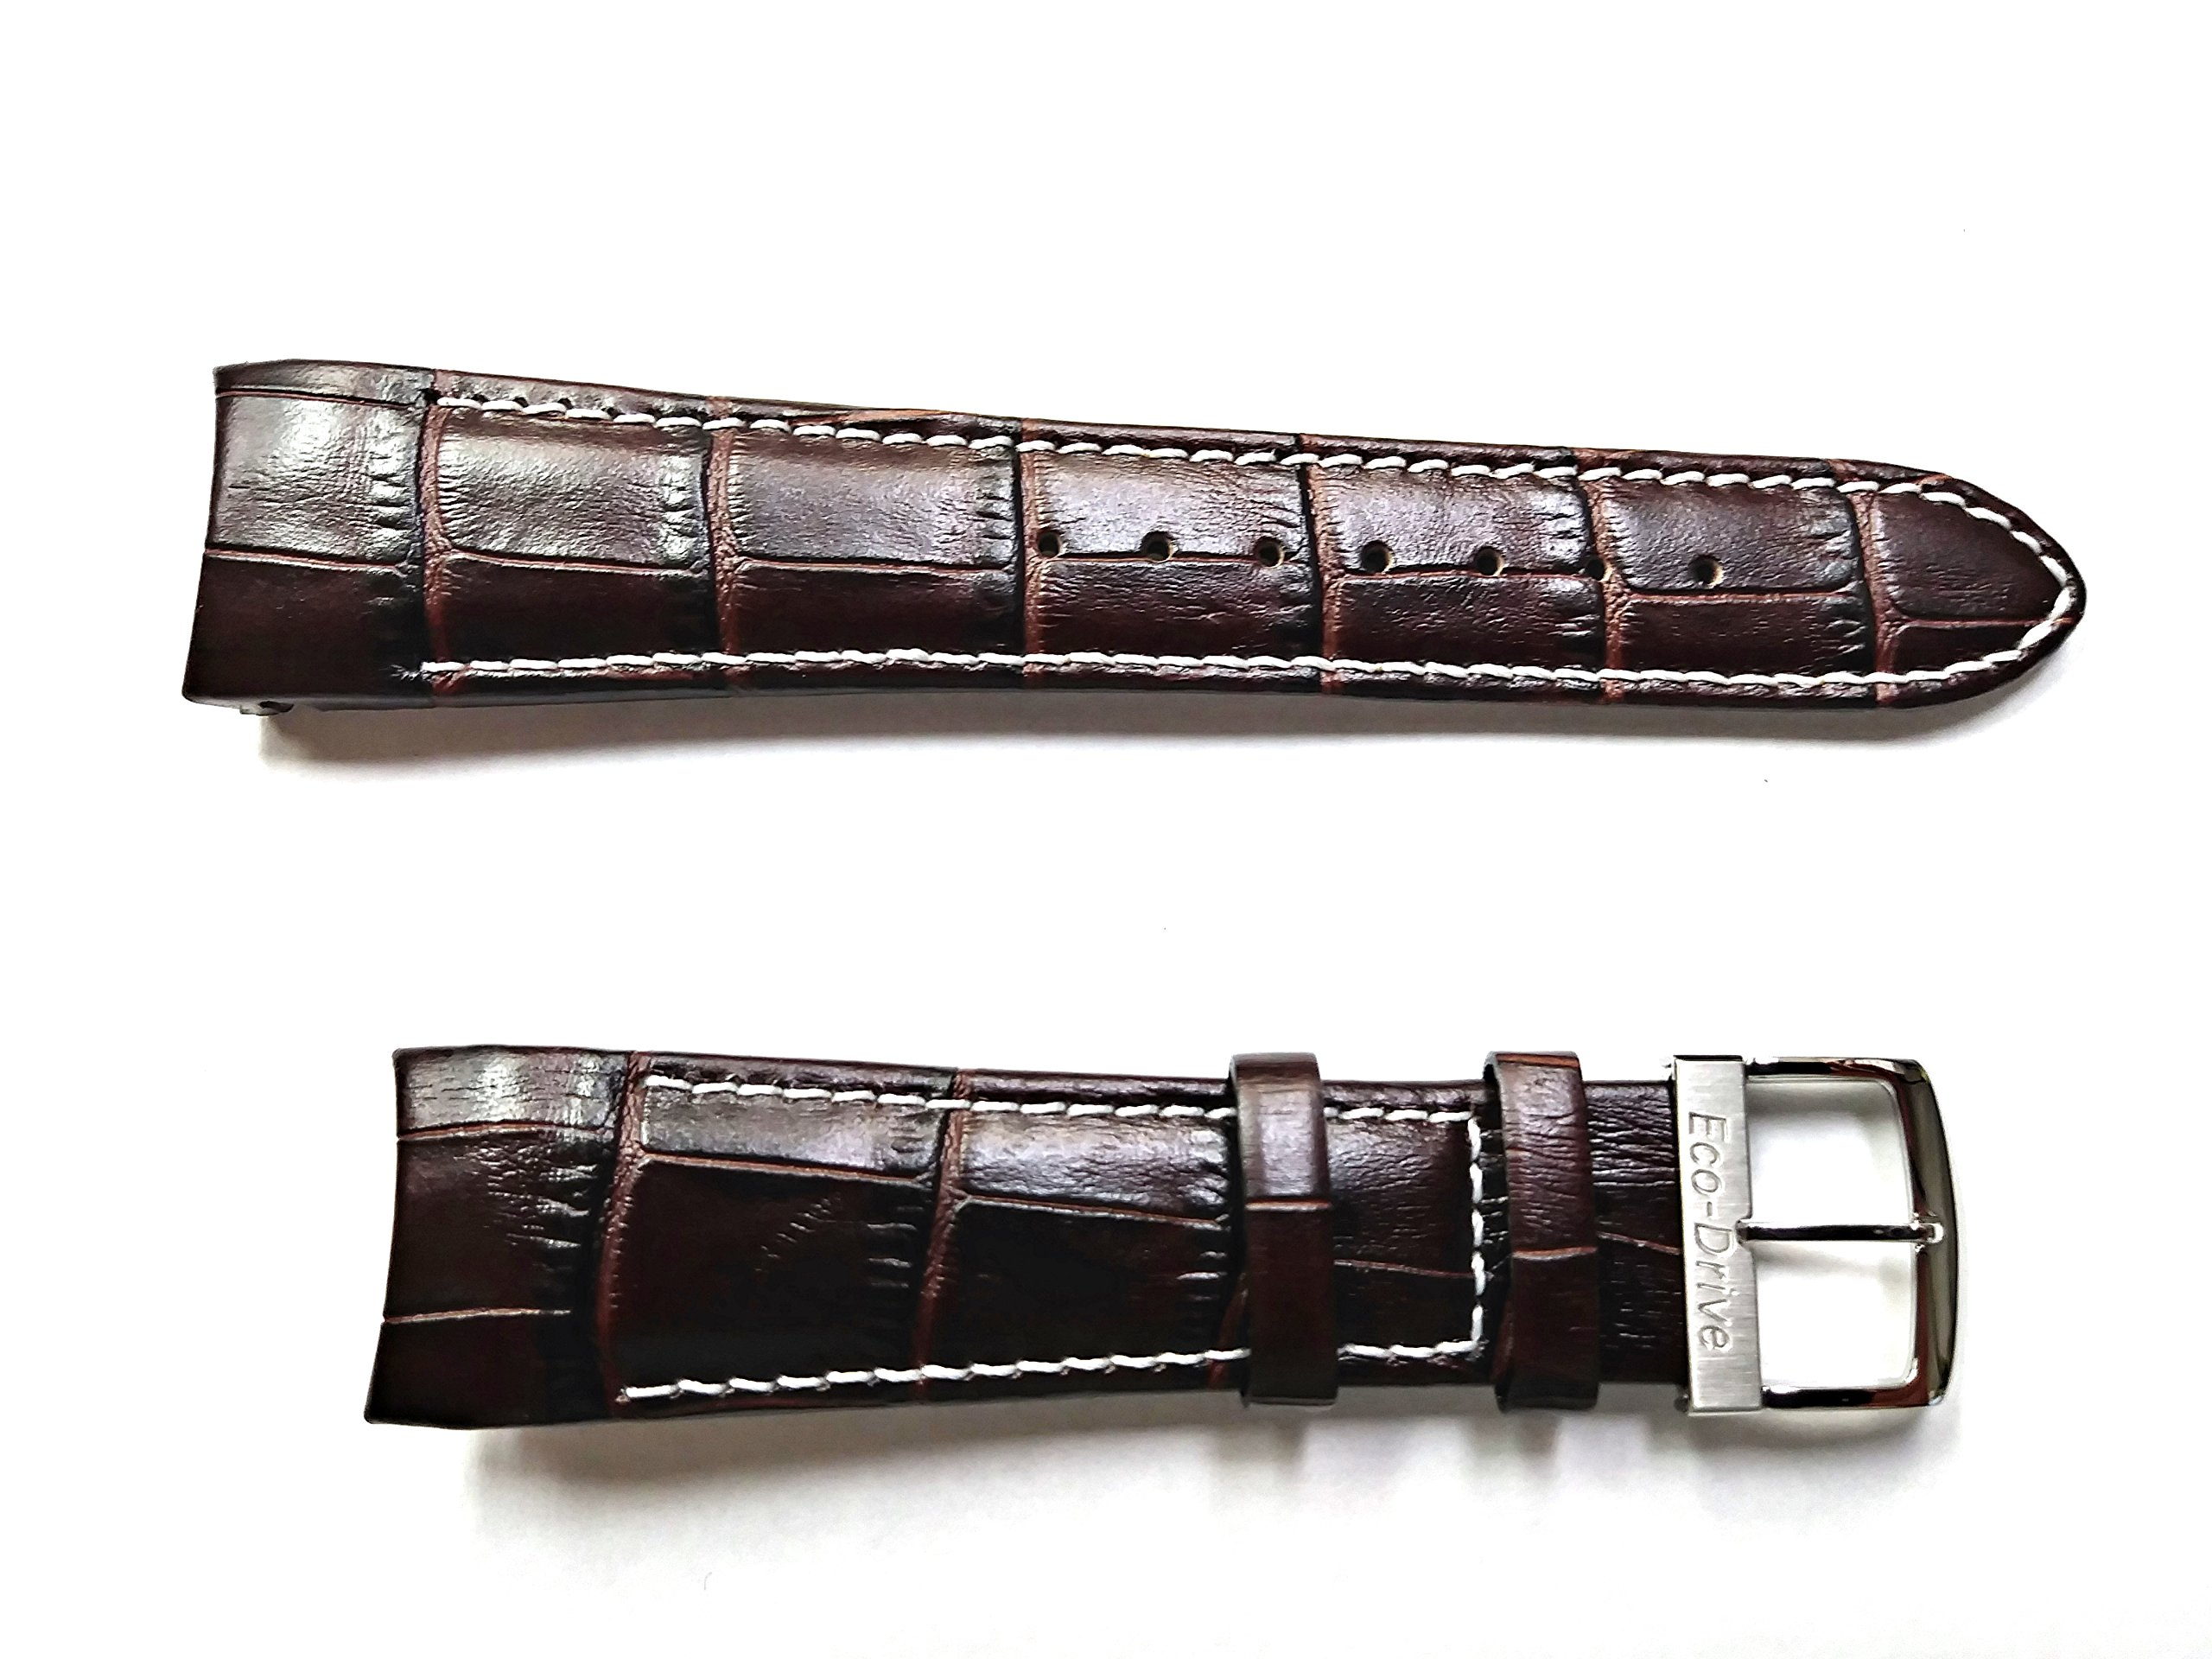 59-S51439 ORIGINAL GENUINE Citizen Chandler BROWN Leather Watch Band for Men's Eco-Drive Chronograph Watch AT0550-11X